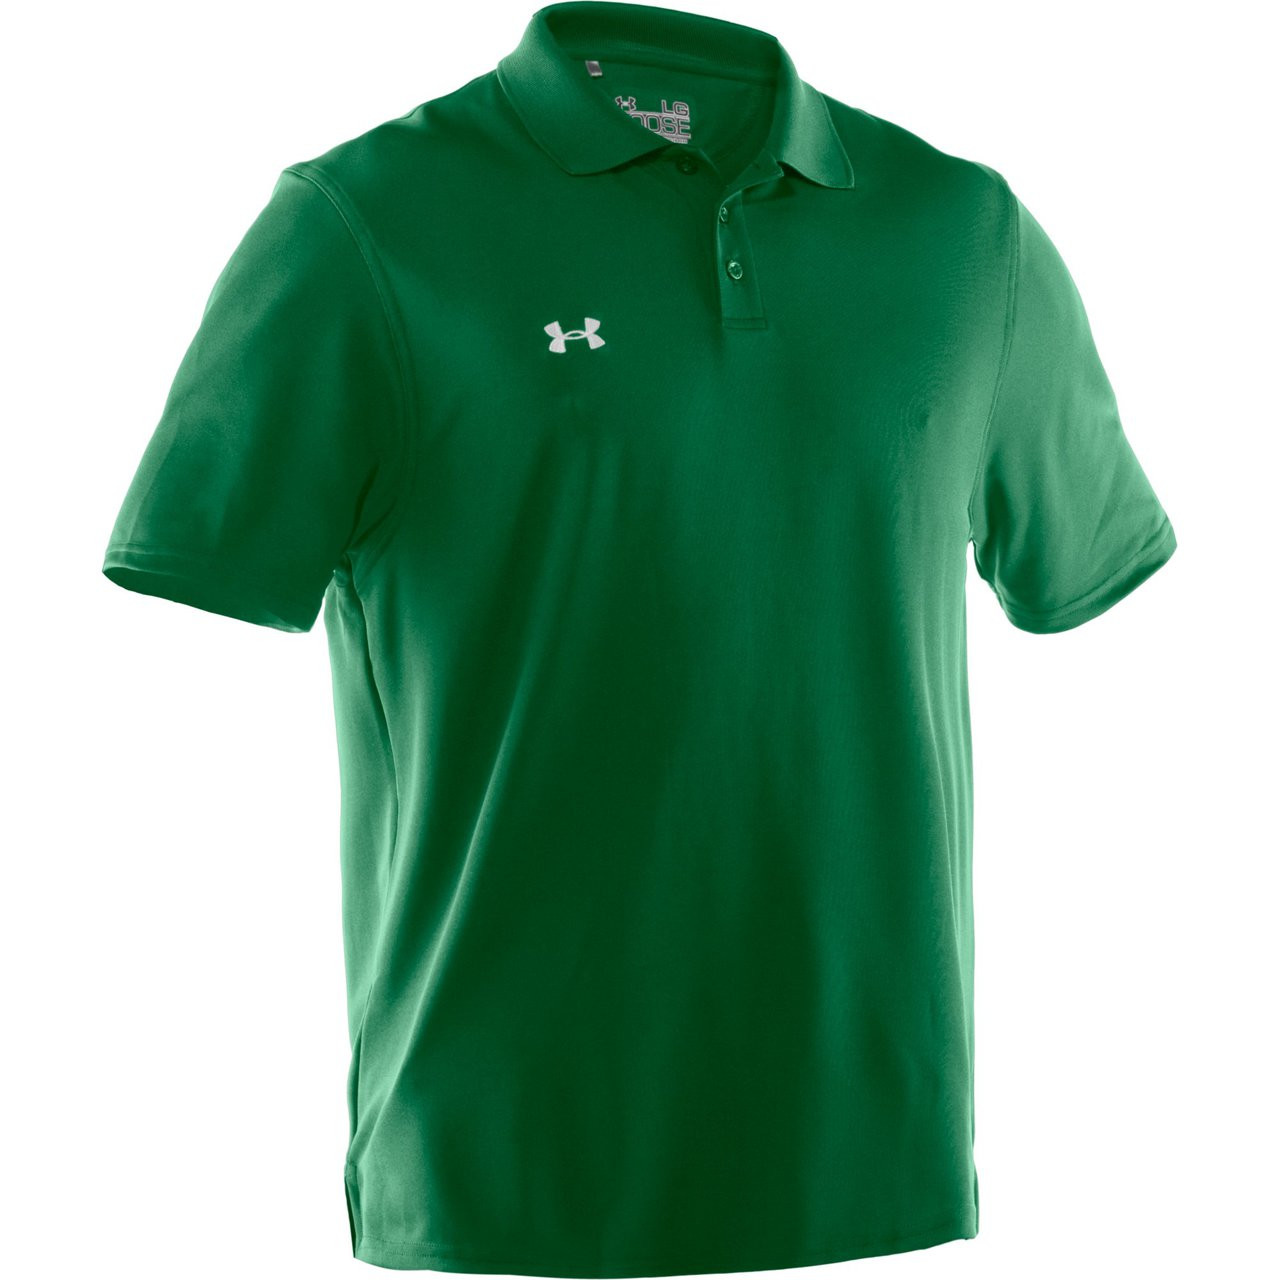 Under Armour Team Performance Polo - Kelly Green White